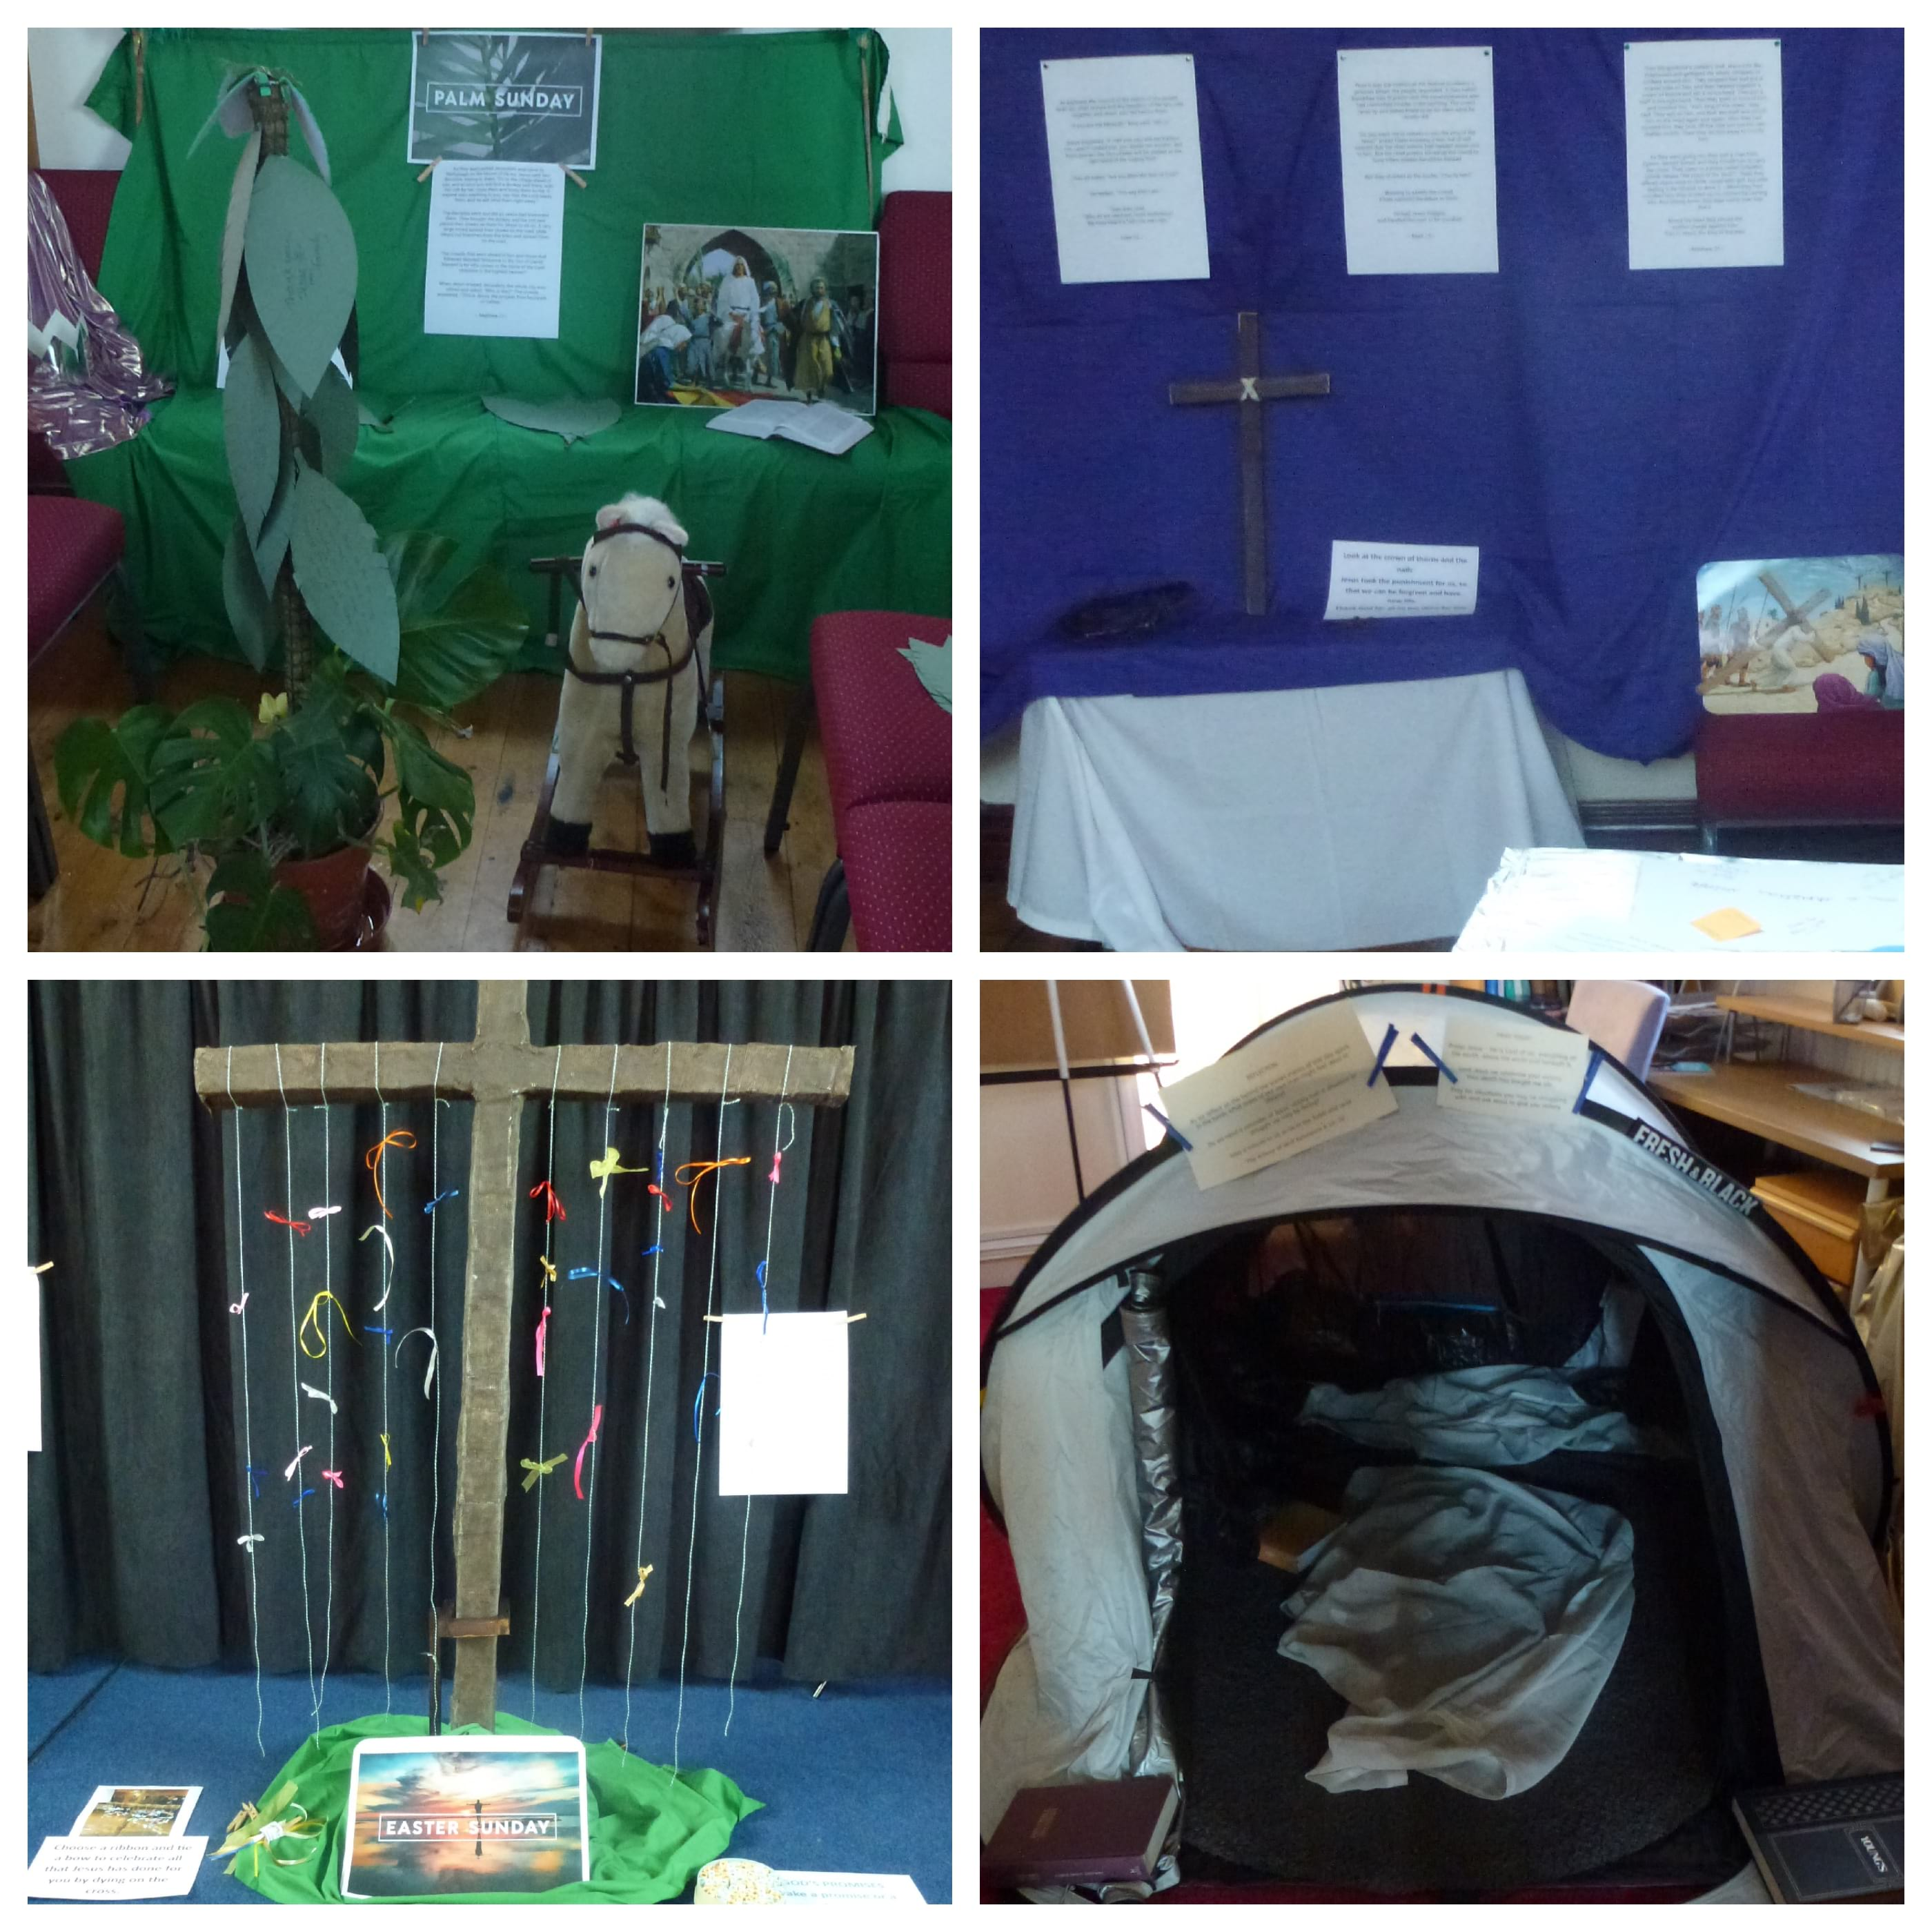 Part of our prayer room. Here are 4 of the 8 days depicted from Palm Sunday to Easter Sunday